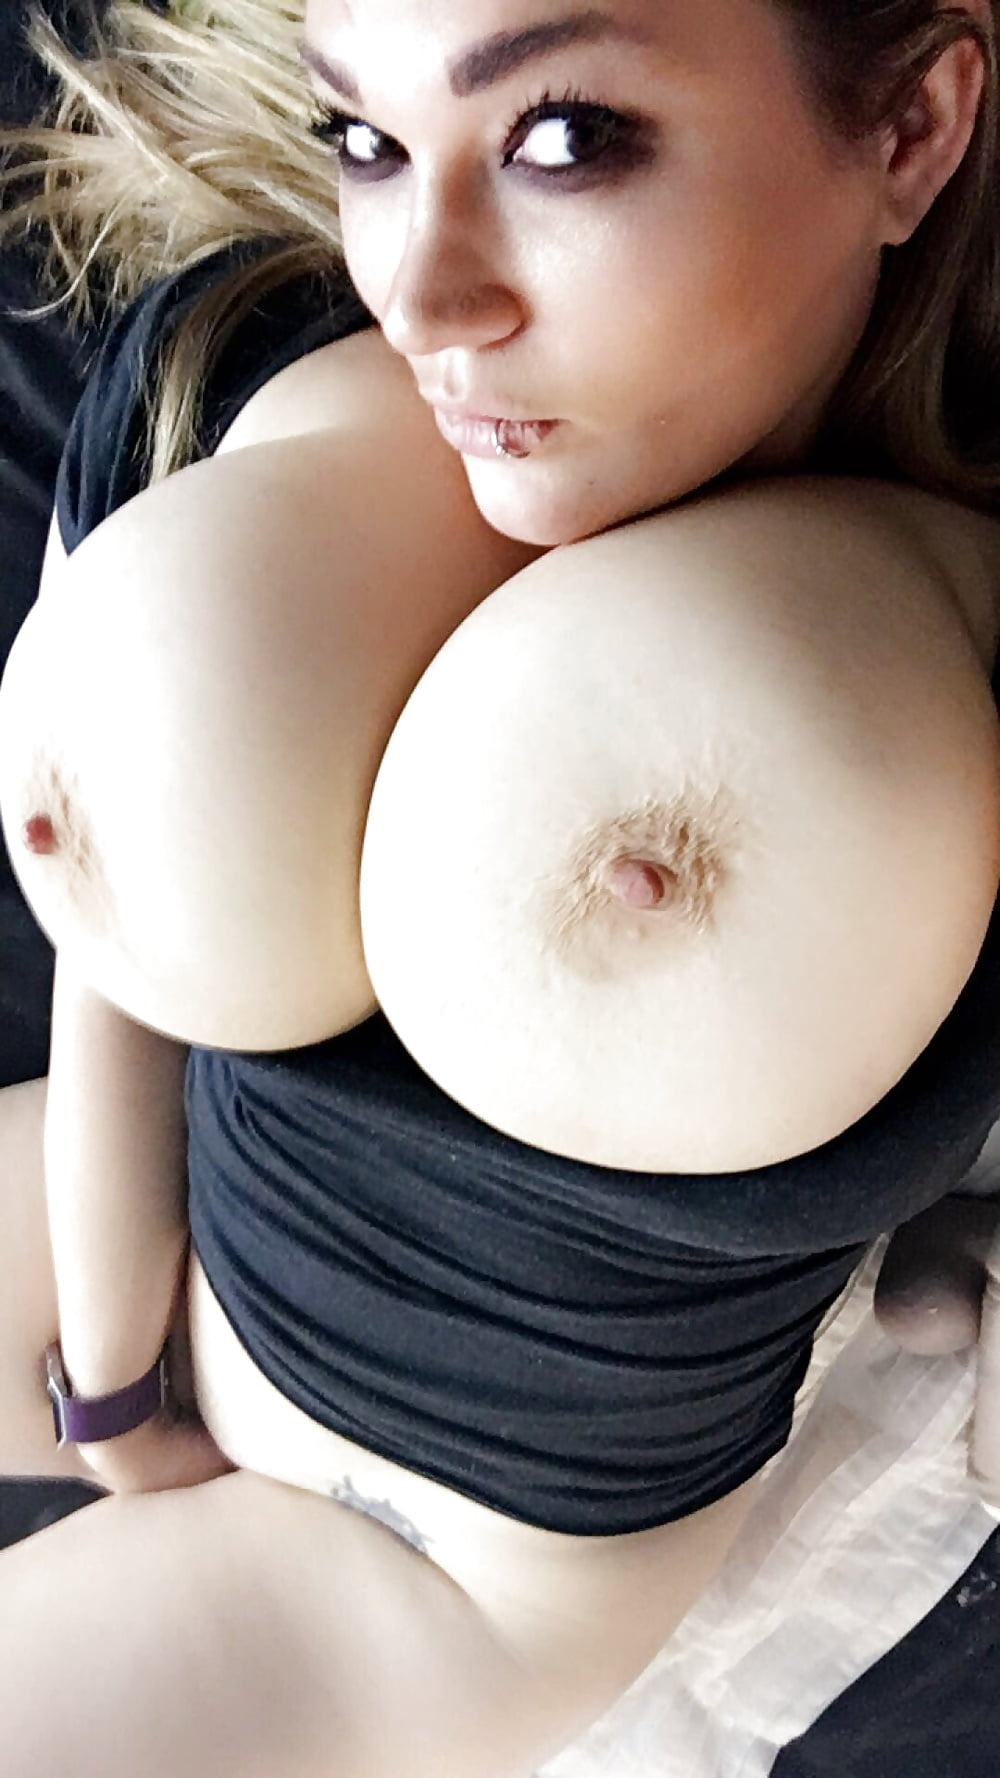 Nothing but tits